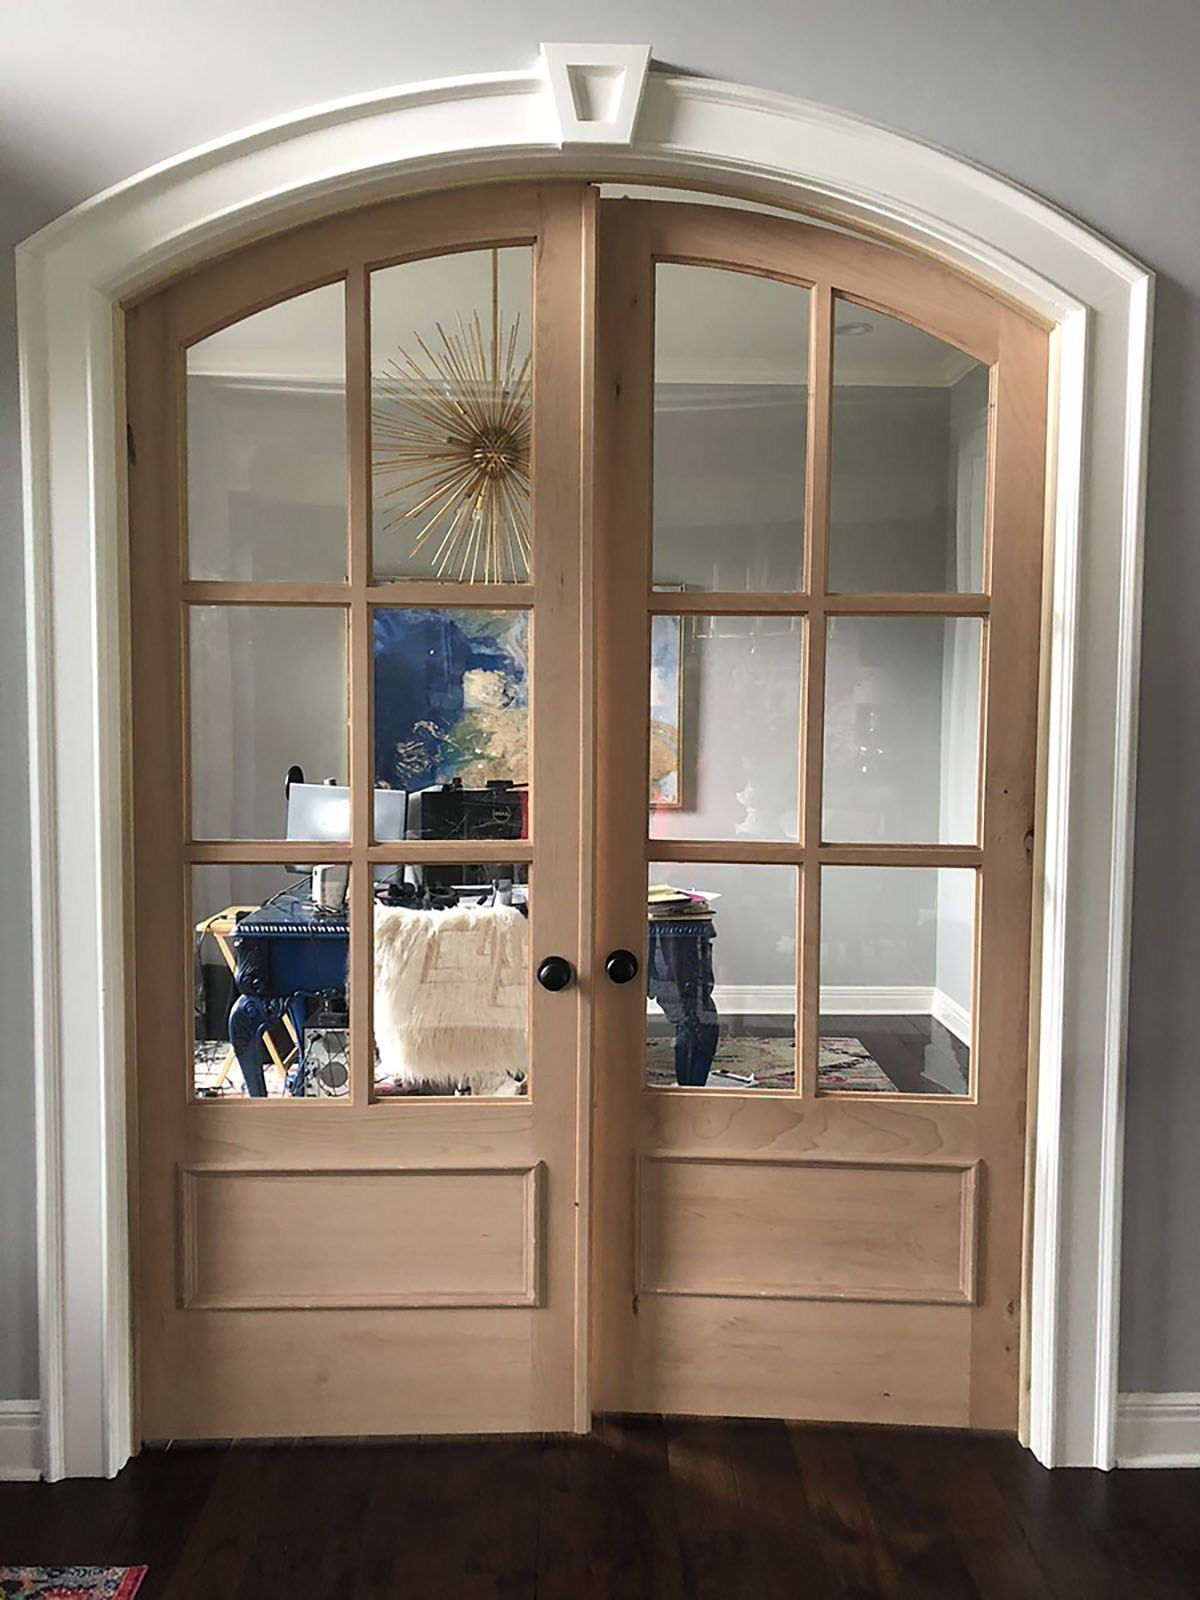 New French Doors For My Feminine Home Office Jennifer Allwood